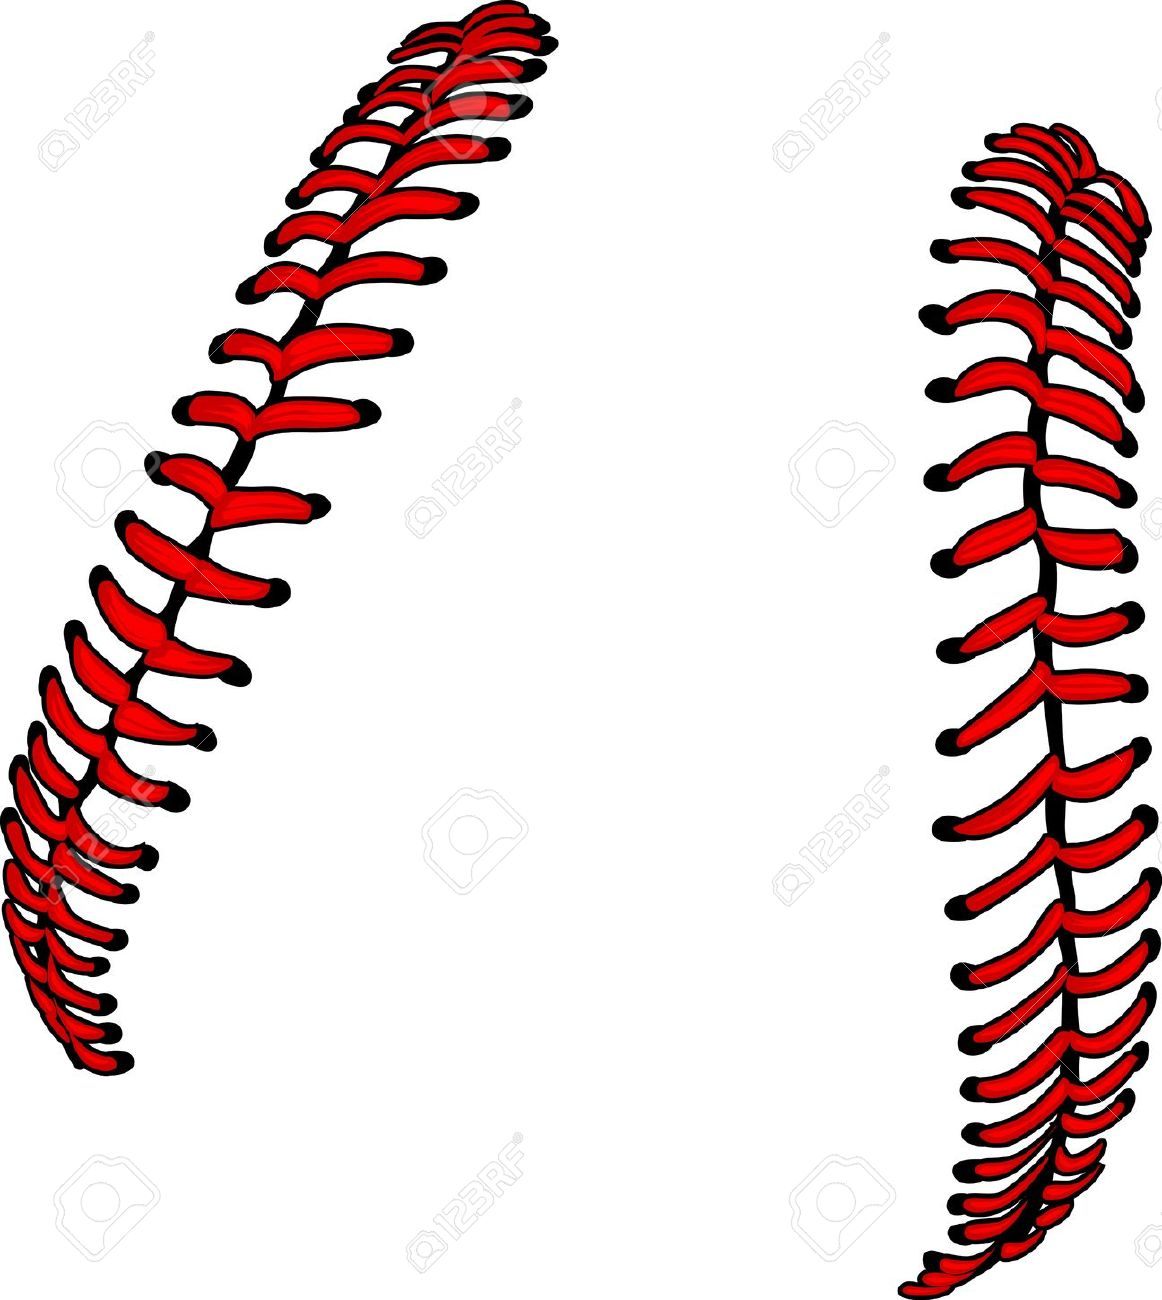 1162x1300 Baseball Clipart, Suggestions For Baseball Clipart, Download